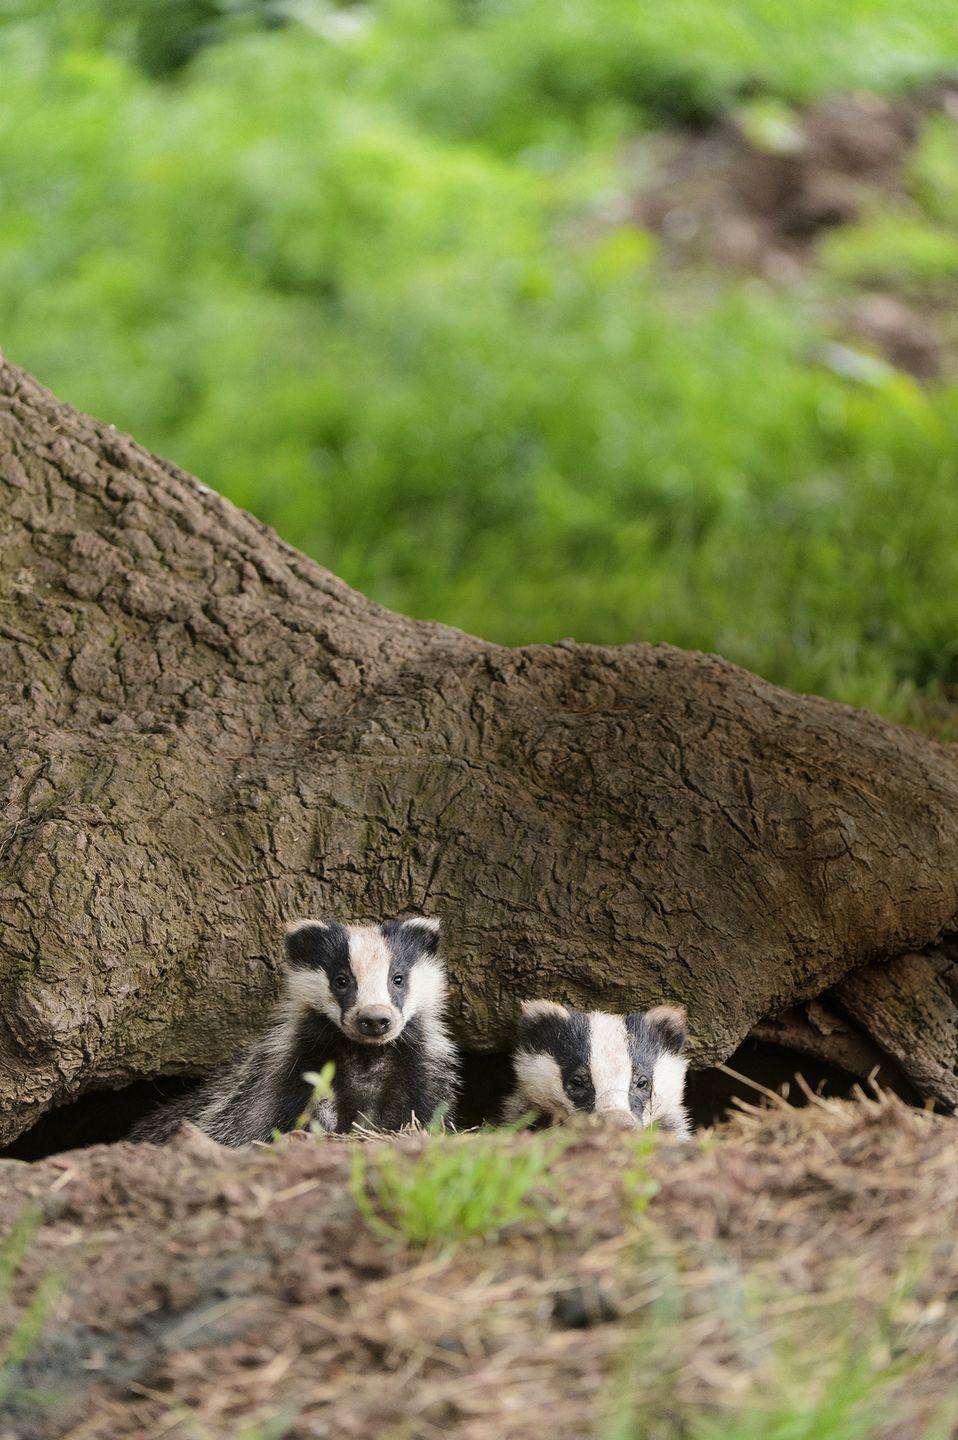 <p>Deep beneath the forest floor, badgers (Meles meles) build burrows featuring a sophisticated system of tunnels and chambers. Prepping for parenthood, expectant sows add nursery nooks at the beginning of the year – using grass, moss and bracken for bedding. Born with their eyes closed, babies begin to open them aged five weeks old, at which point they start to survey the sett and the area around it (sticking closely to their mother's side for safety). Learning to feed and forage might be serious business, but cubs still make plenty of time for play, tearing around tree trunks for a game of chase with their siblings.</p>